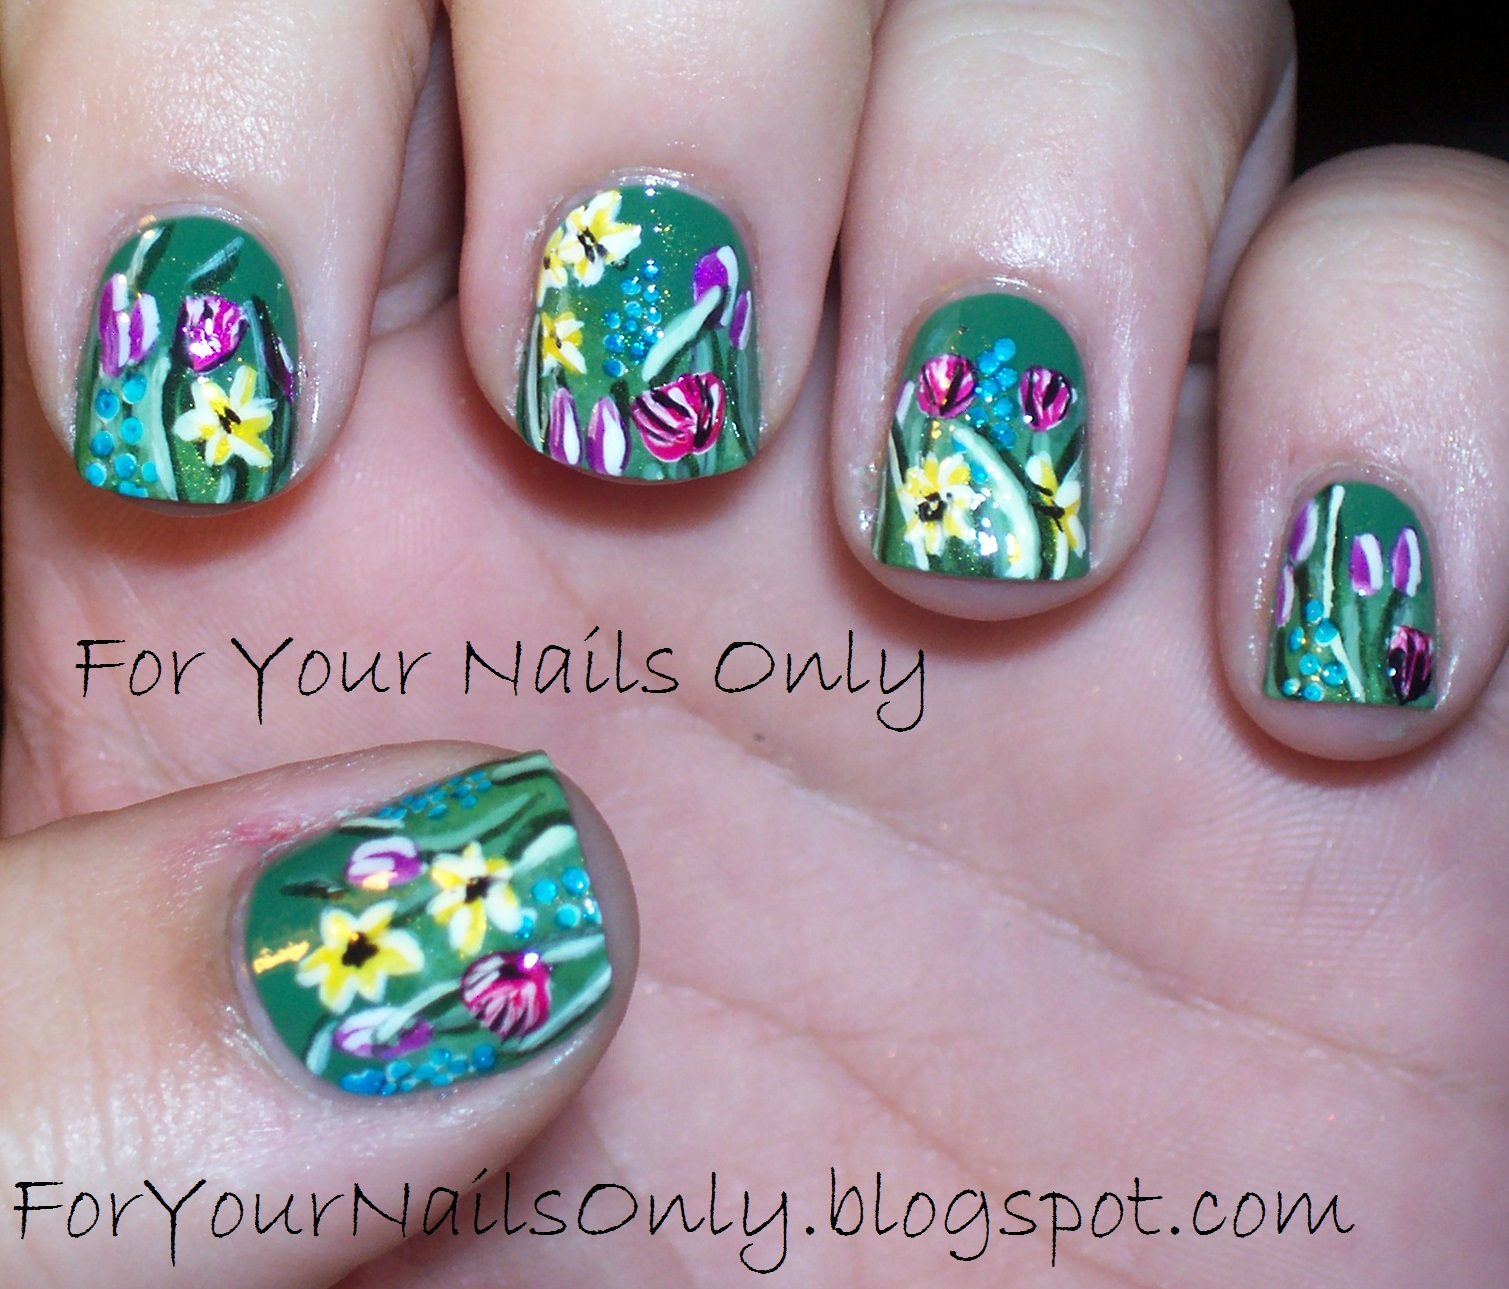 Prettyfulz Fall Nail Art Design 2011: A Weed Is Just An Unplanned Wildflower